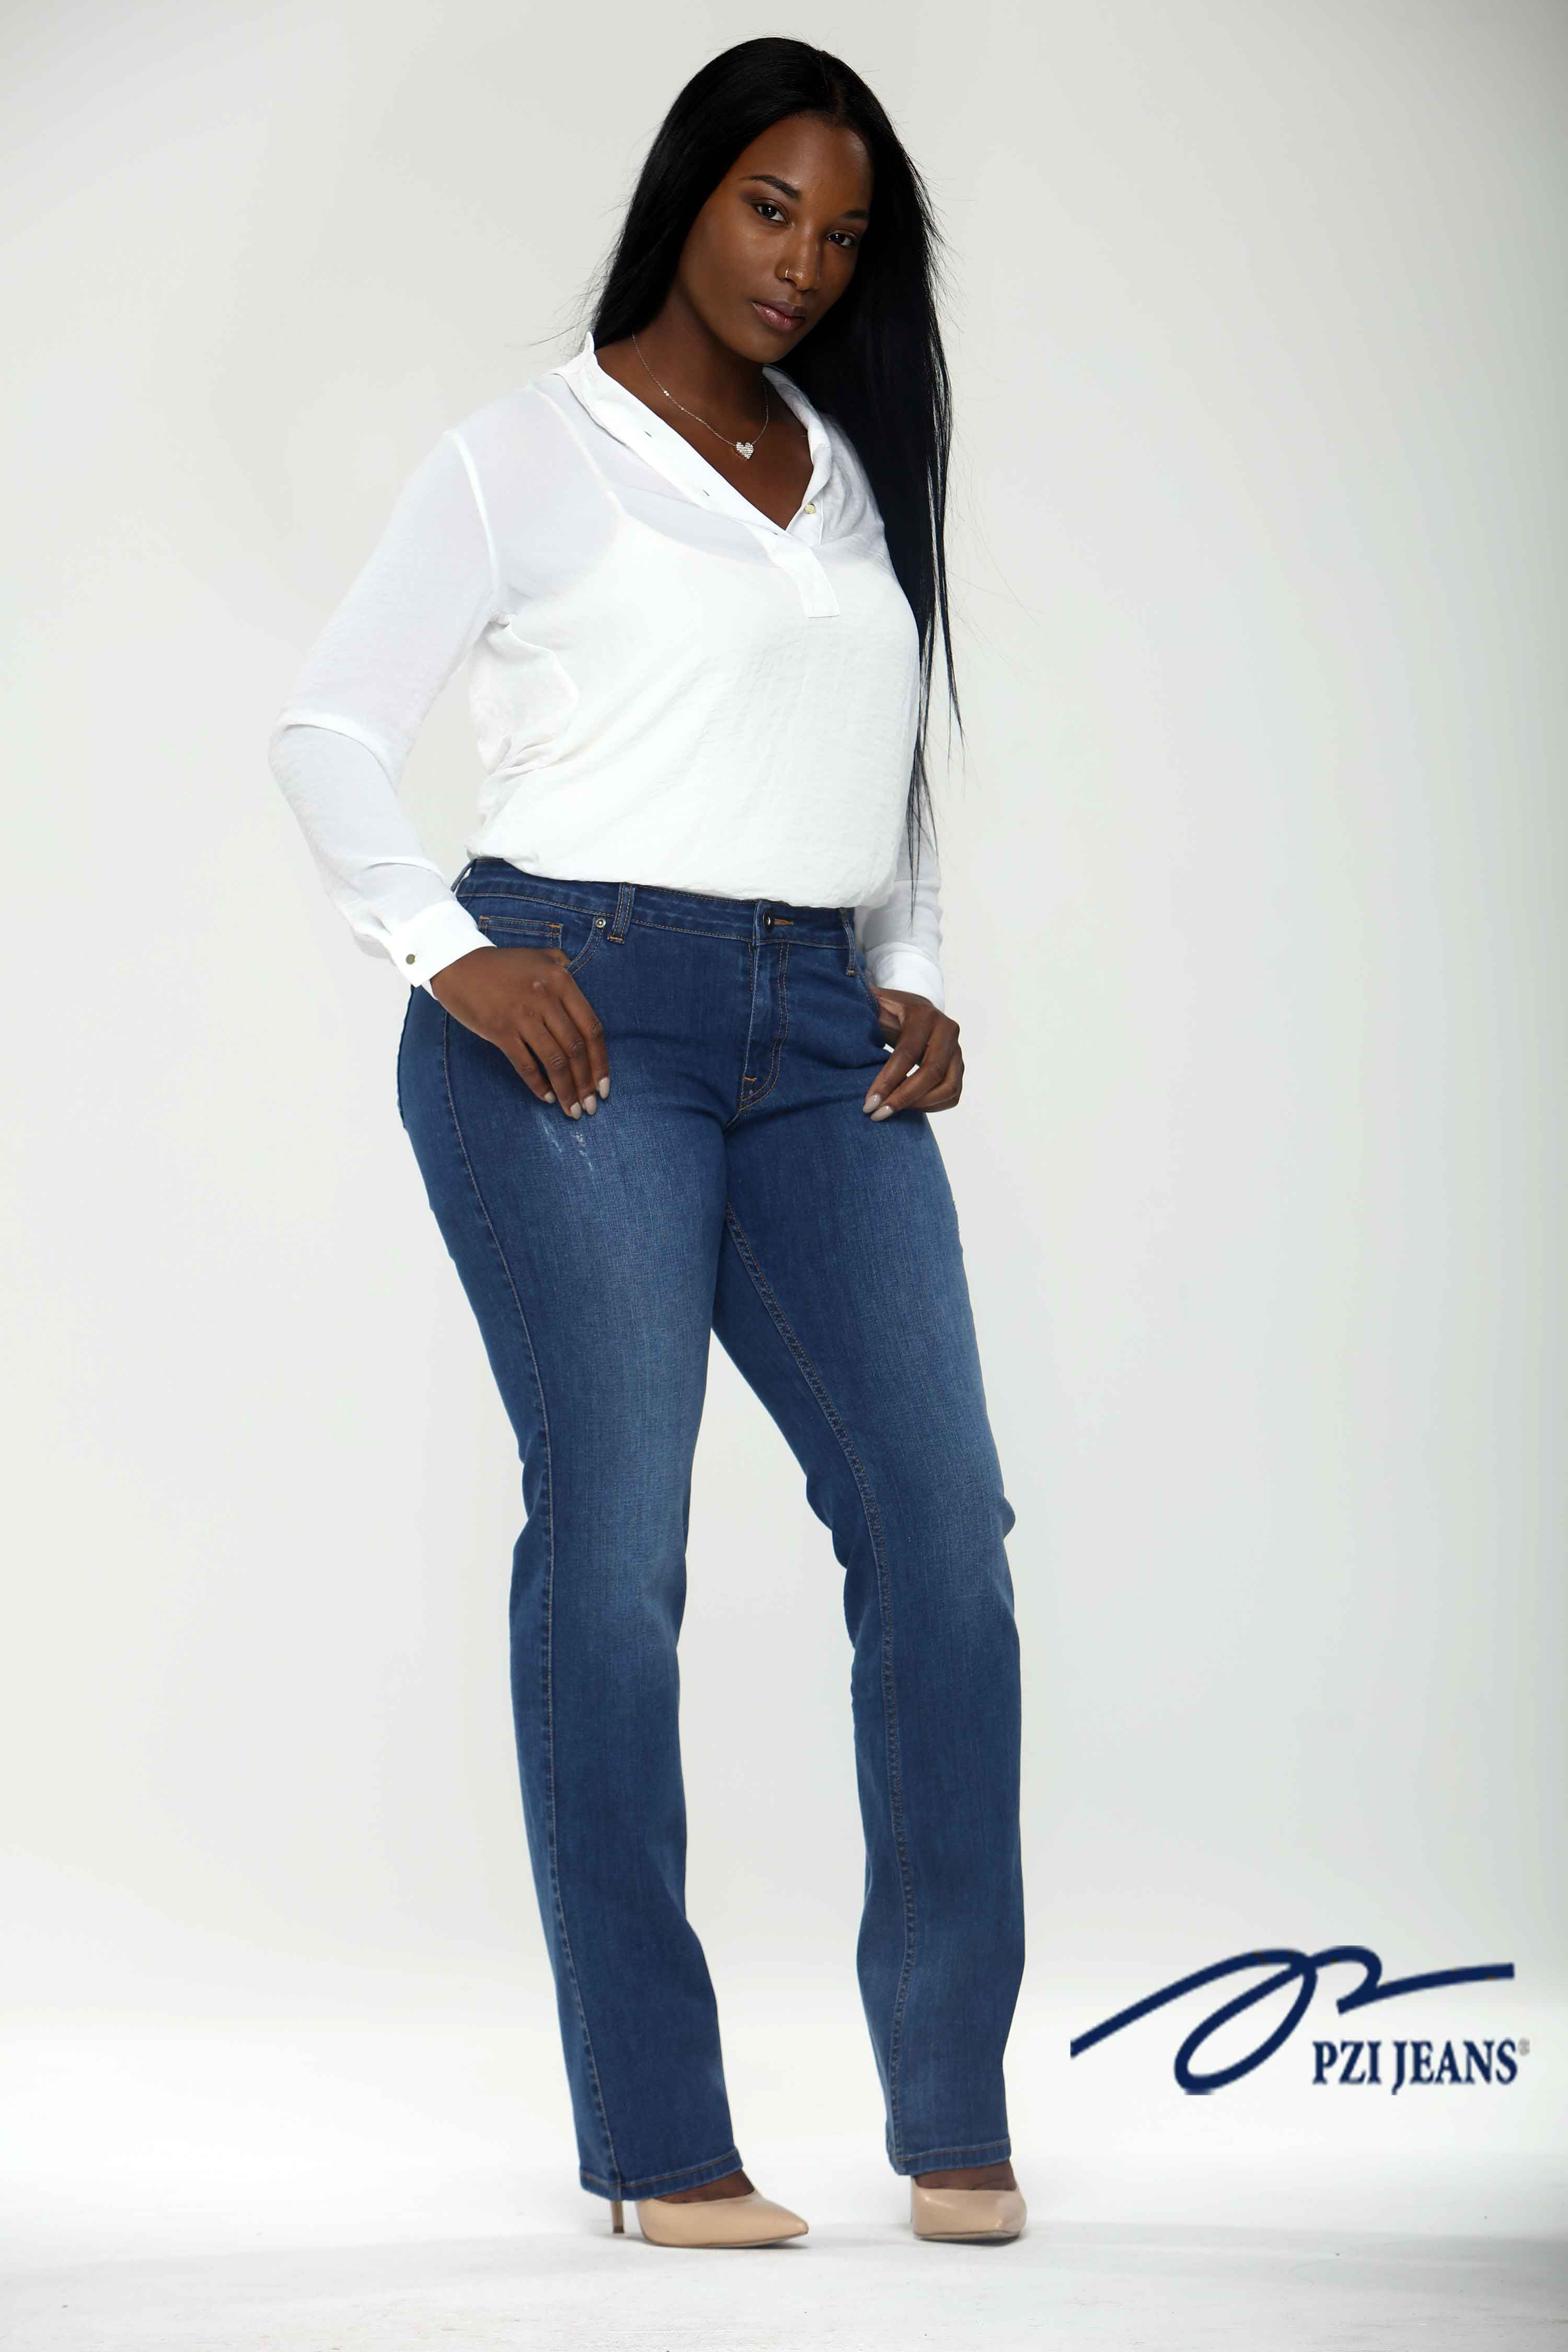 69cb346d4a4 Best Fitting Jeans For Women With Curves.